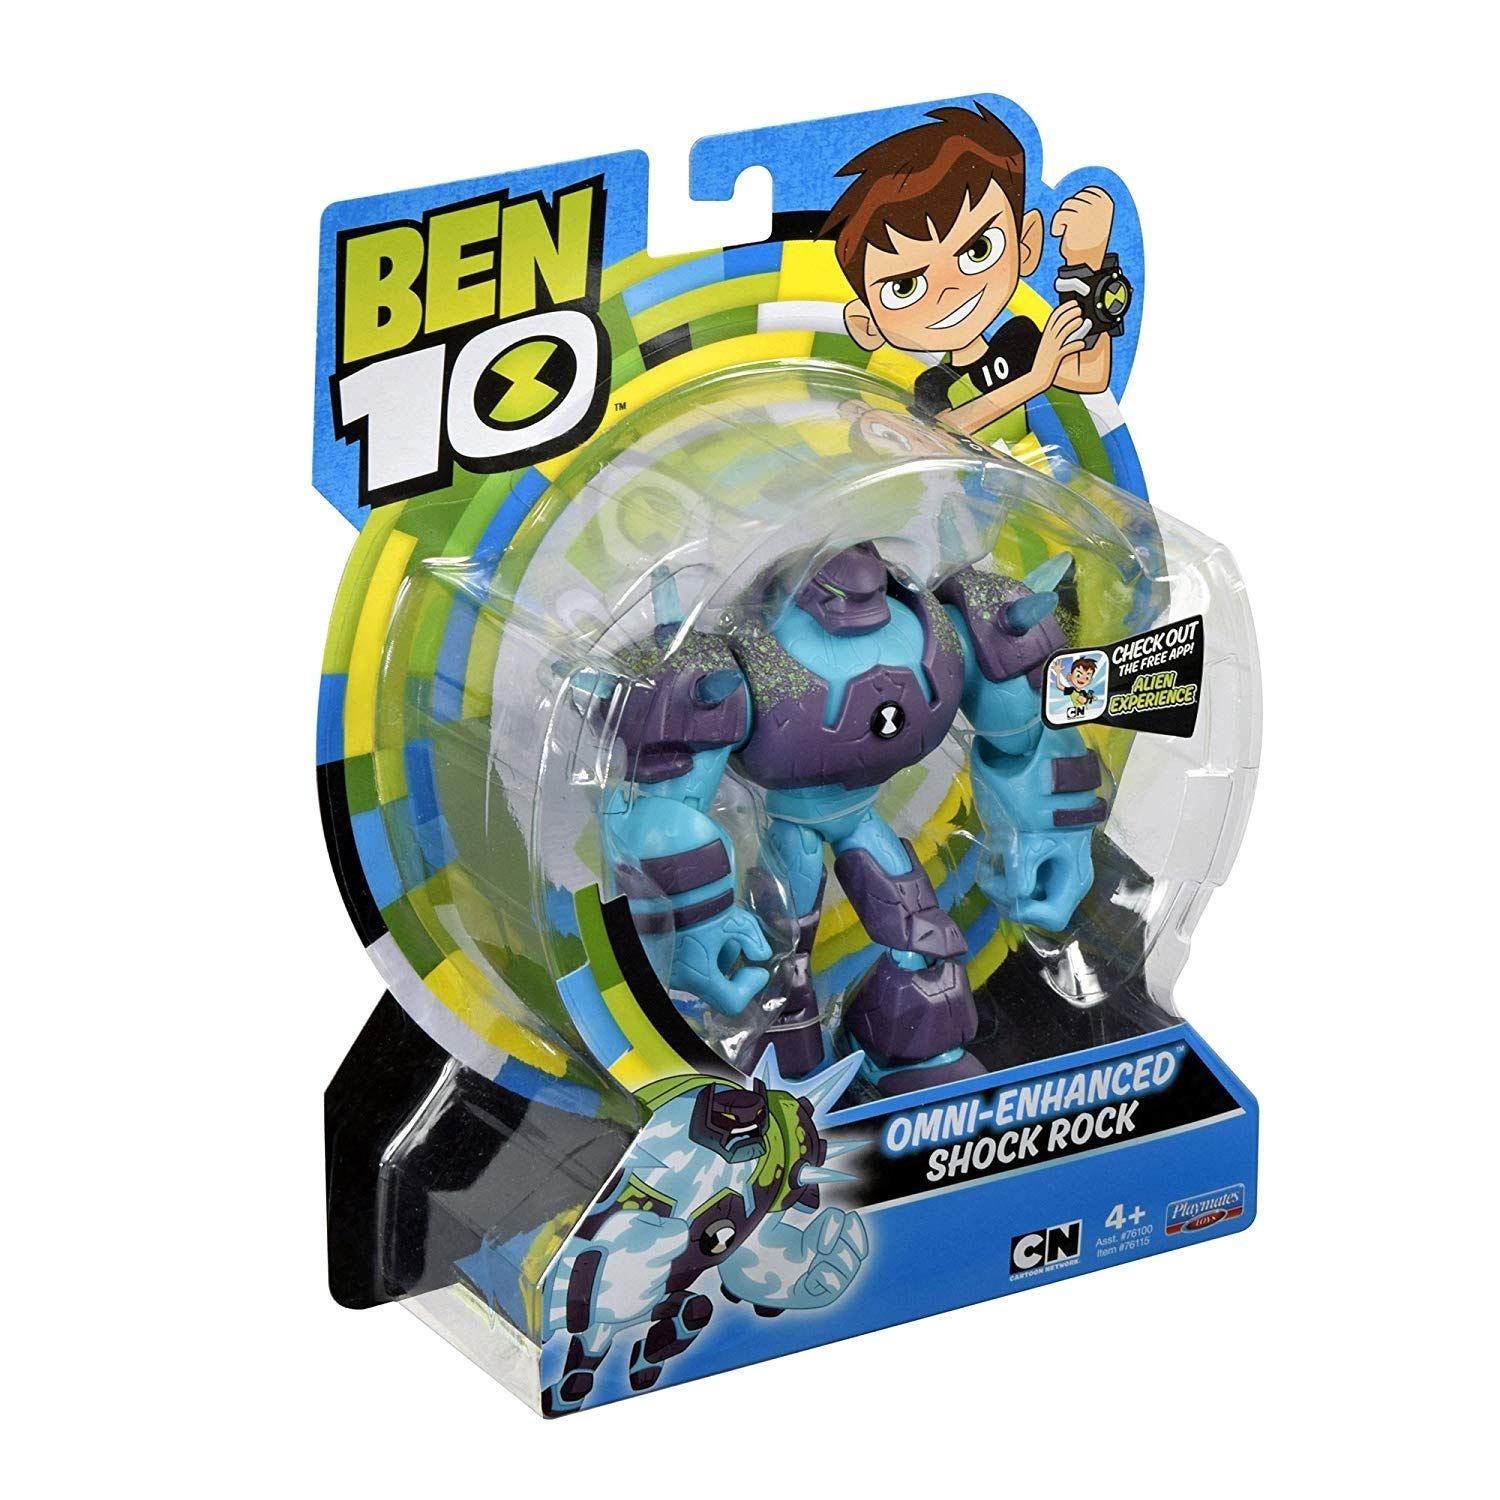 "Ben 10 Omni Enhanced Shockrock Action Figure 4/"" 5/"" Shock Rock"